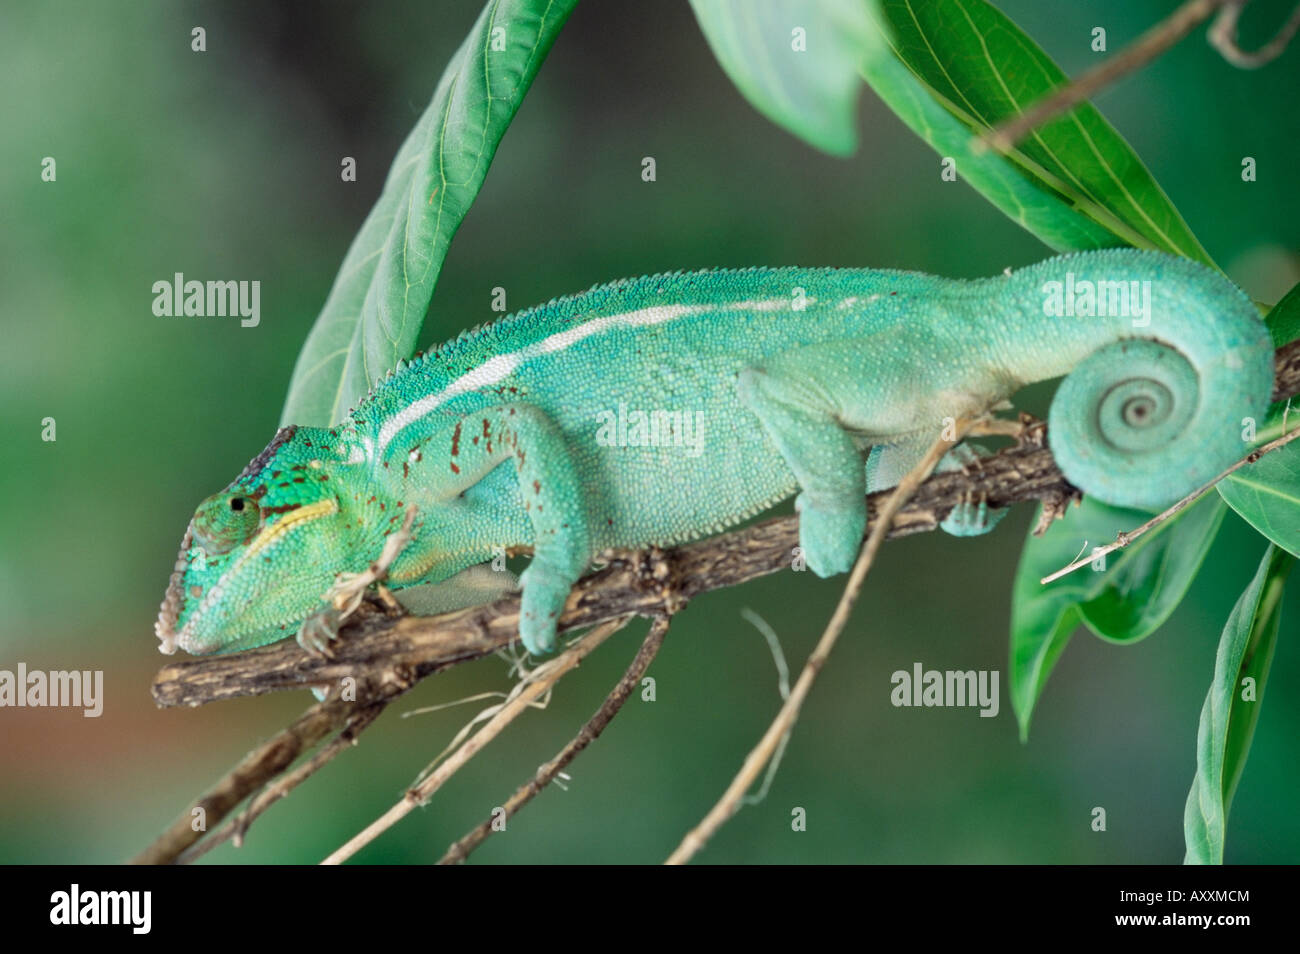 Panther chameleon on a branch - Stock Image